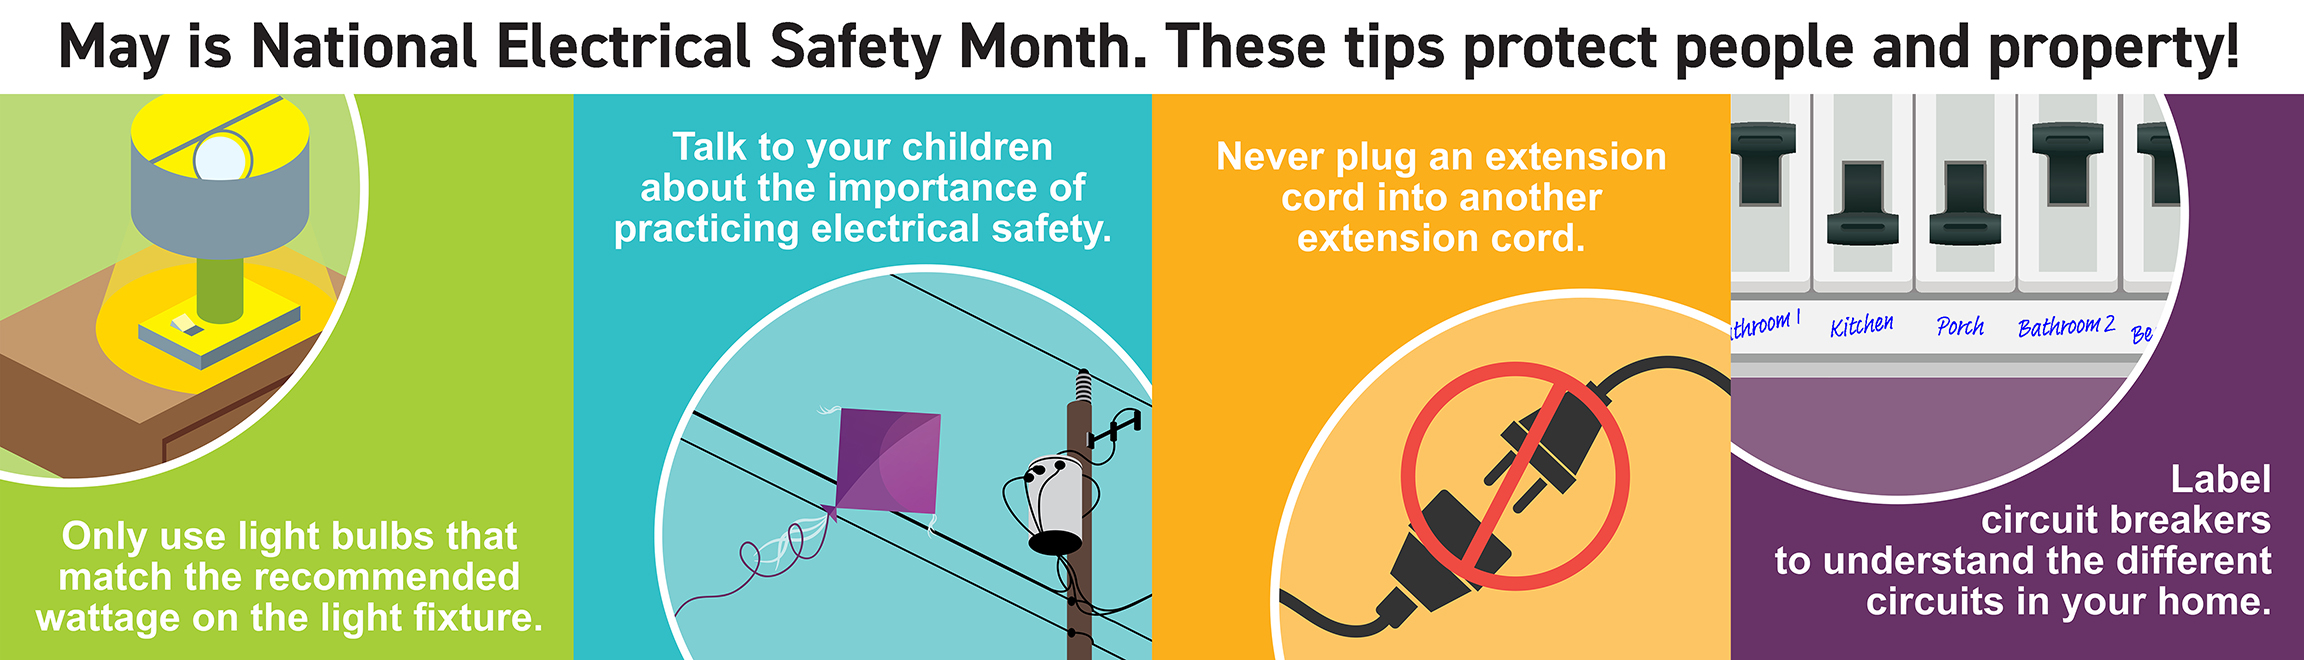 May is national electric safety month.